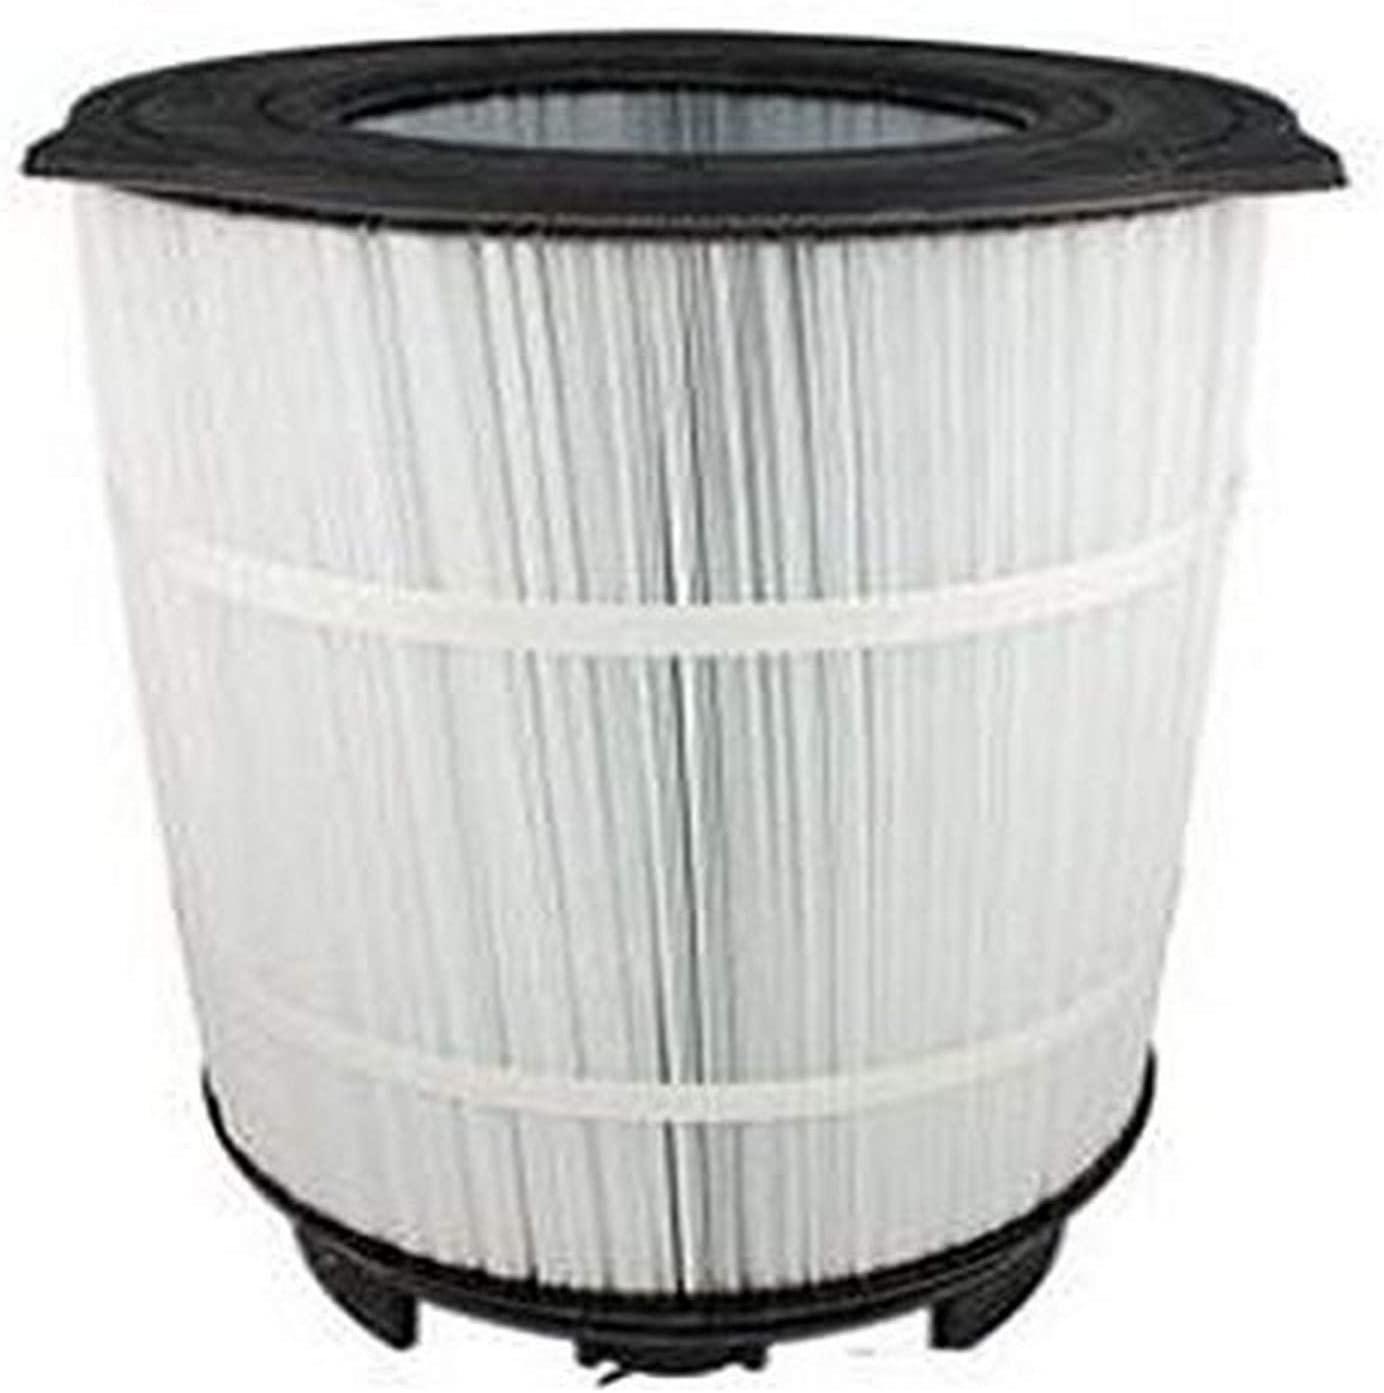 Pentair 25022-0225S Large Outer Cartridge Replacement Sta-Rite System 3 SM-Series S8M500 Pool and Spa Cartridge Filter